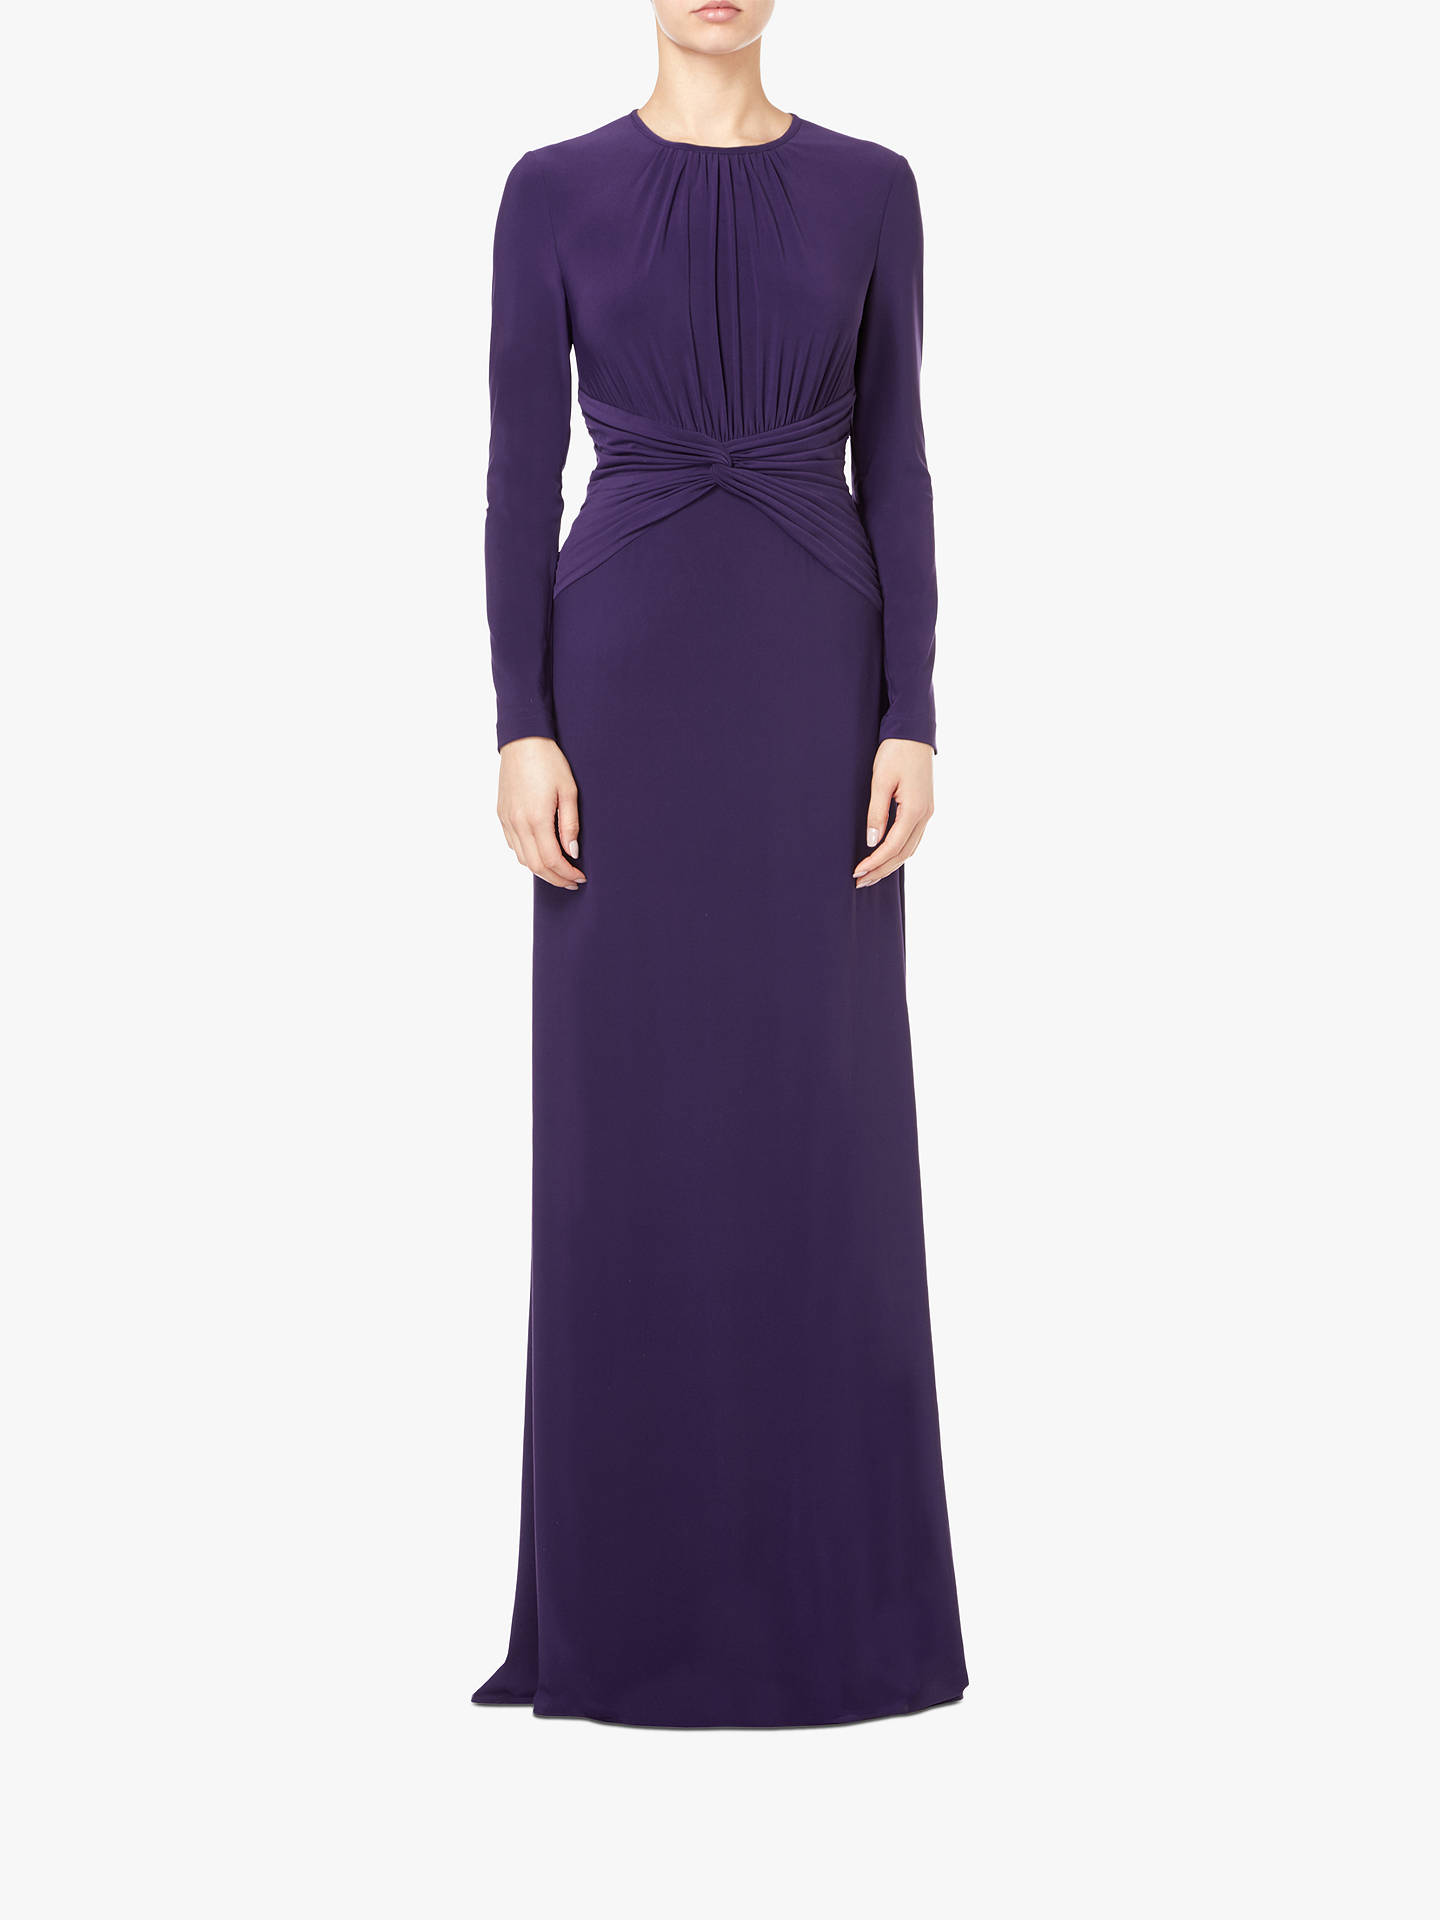 BuyAdrianna Papell Ruche Maxi Dress, Aubergine, 6 Online at johnlewis.com